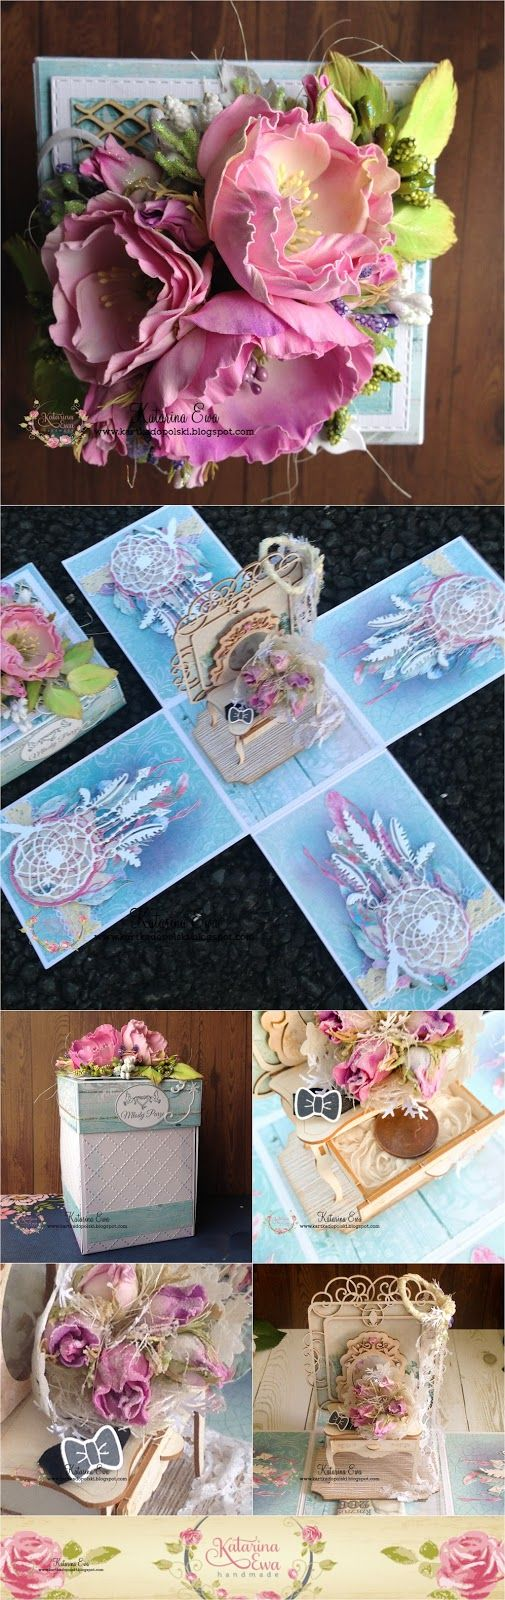 209. Bohoo wedding exploding box with dream catchers - a must see